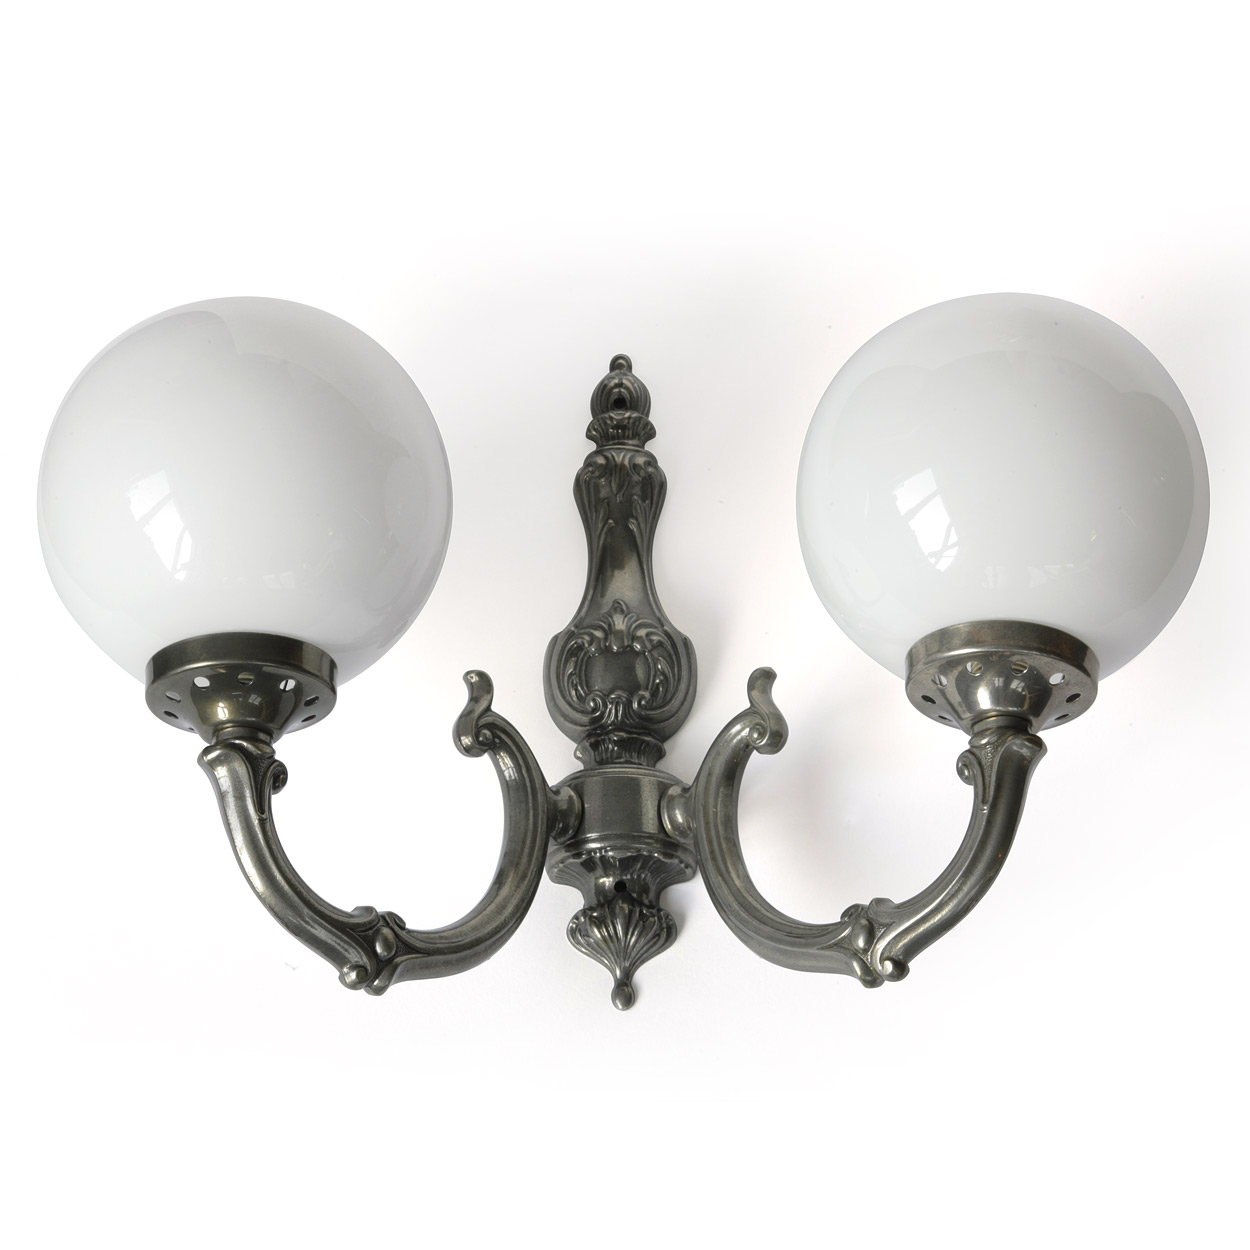 Image 1 classic wall lamp made of brass with two globes shown here in antique silver patinated finish